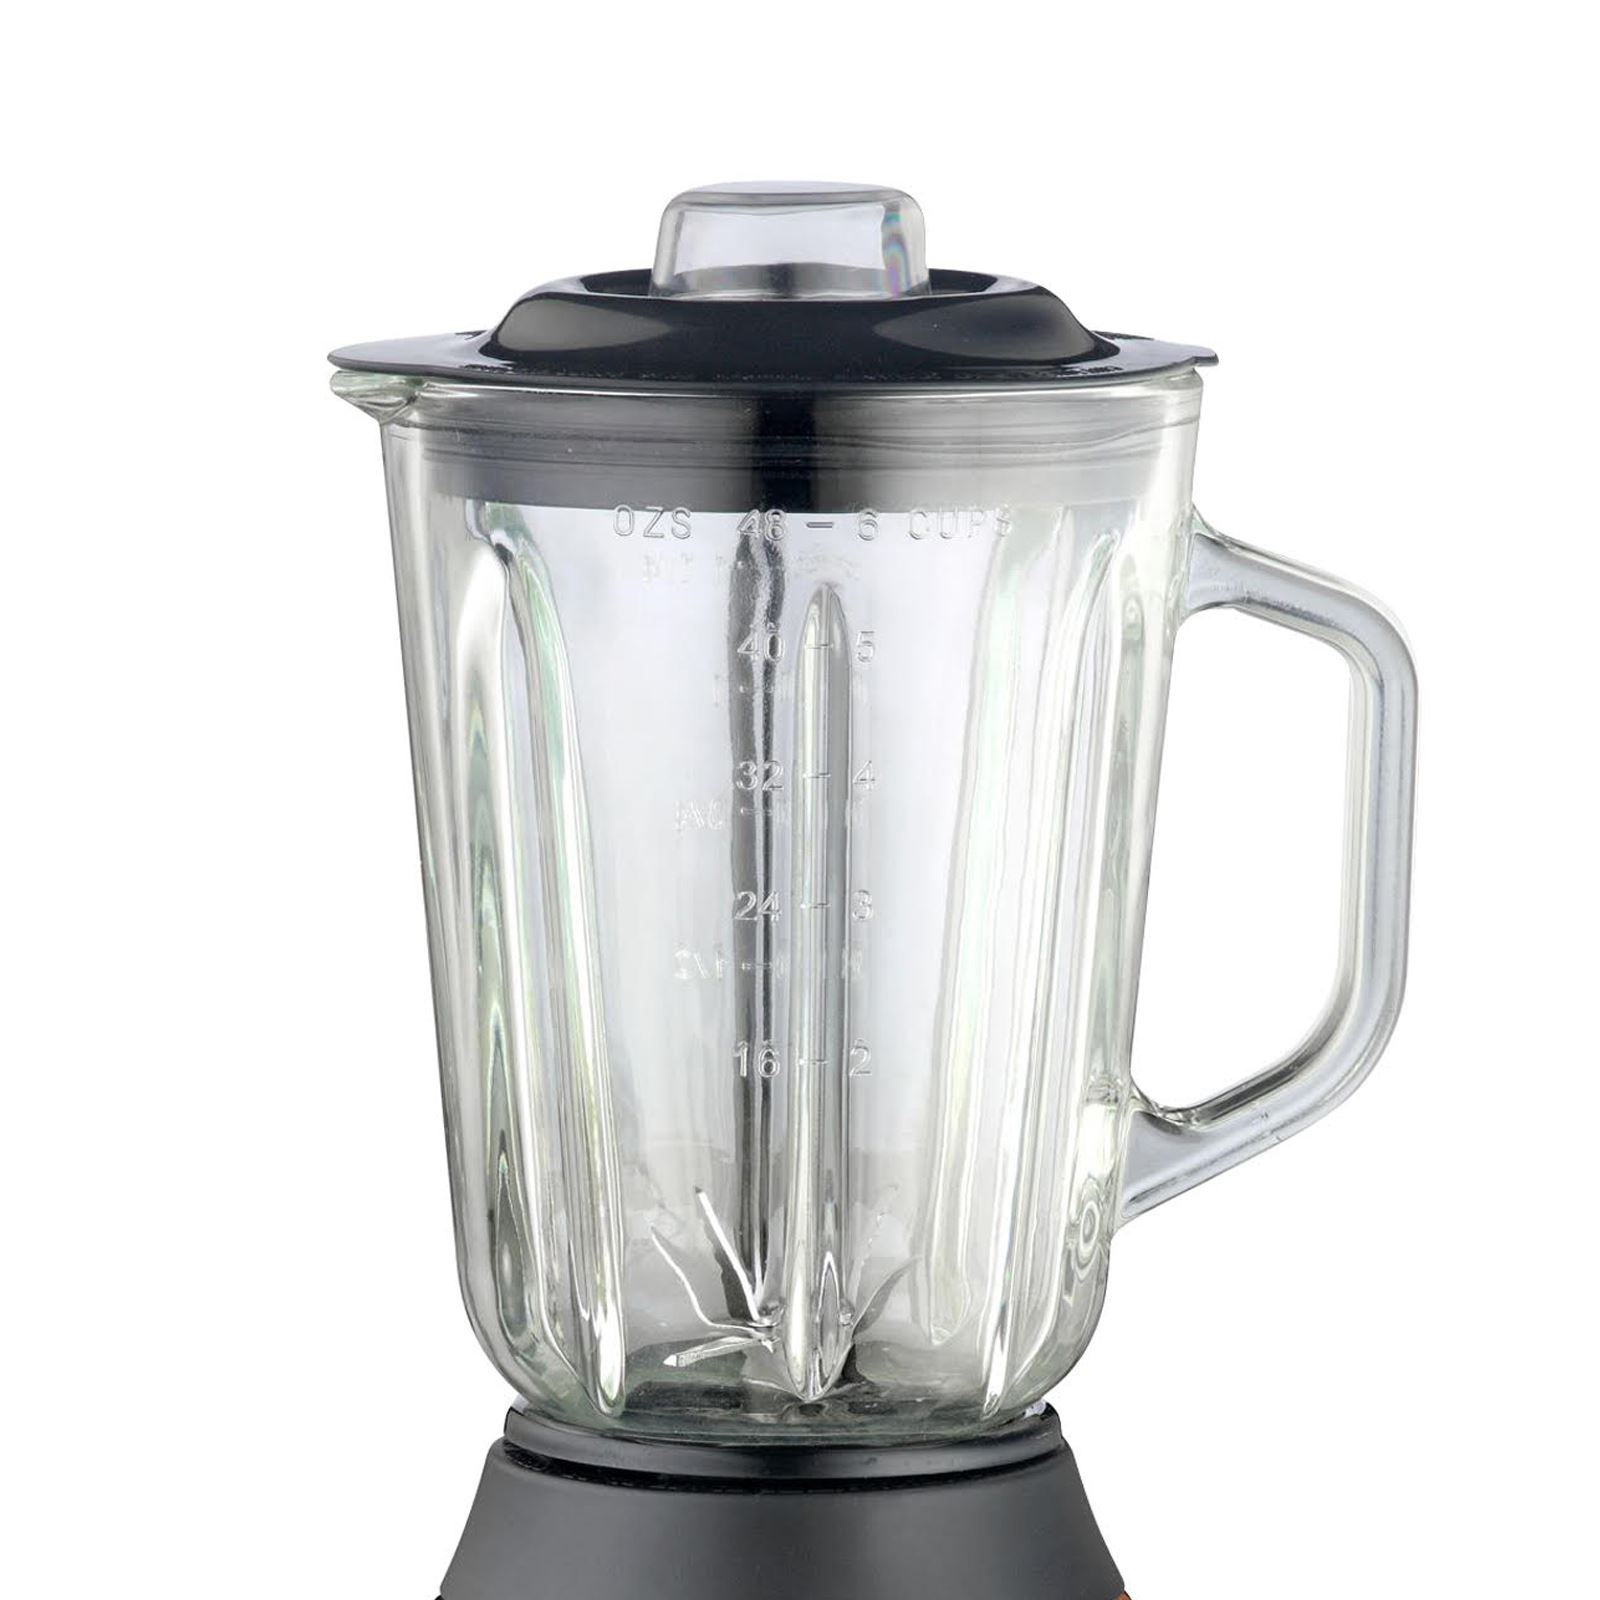 1-5-Litre-Blender-Grinder-Fruit-Shake-Smoothie-Maker-500W-Kitchen-Food-Processor miniatuur 6